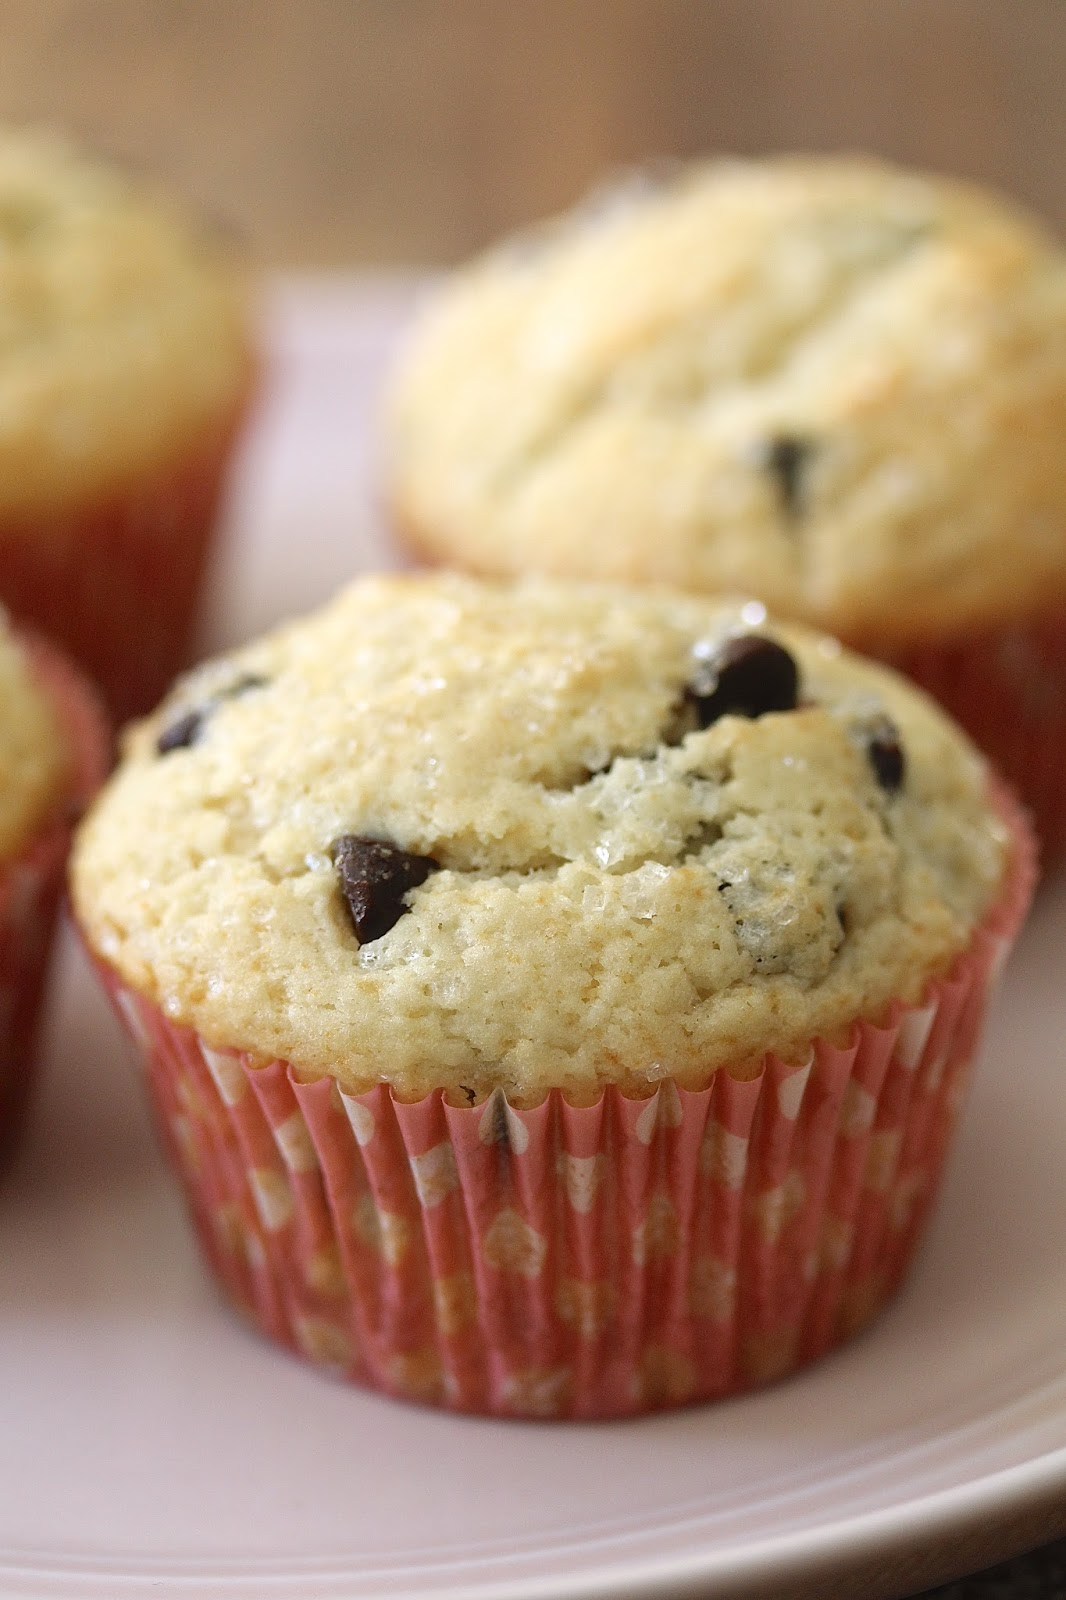 Chocolate Chip Muffins Without Baking Powder